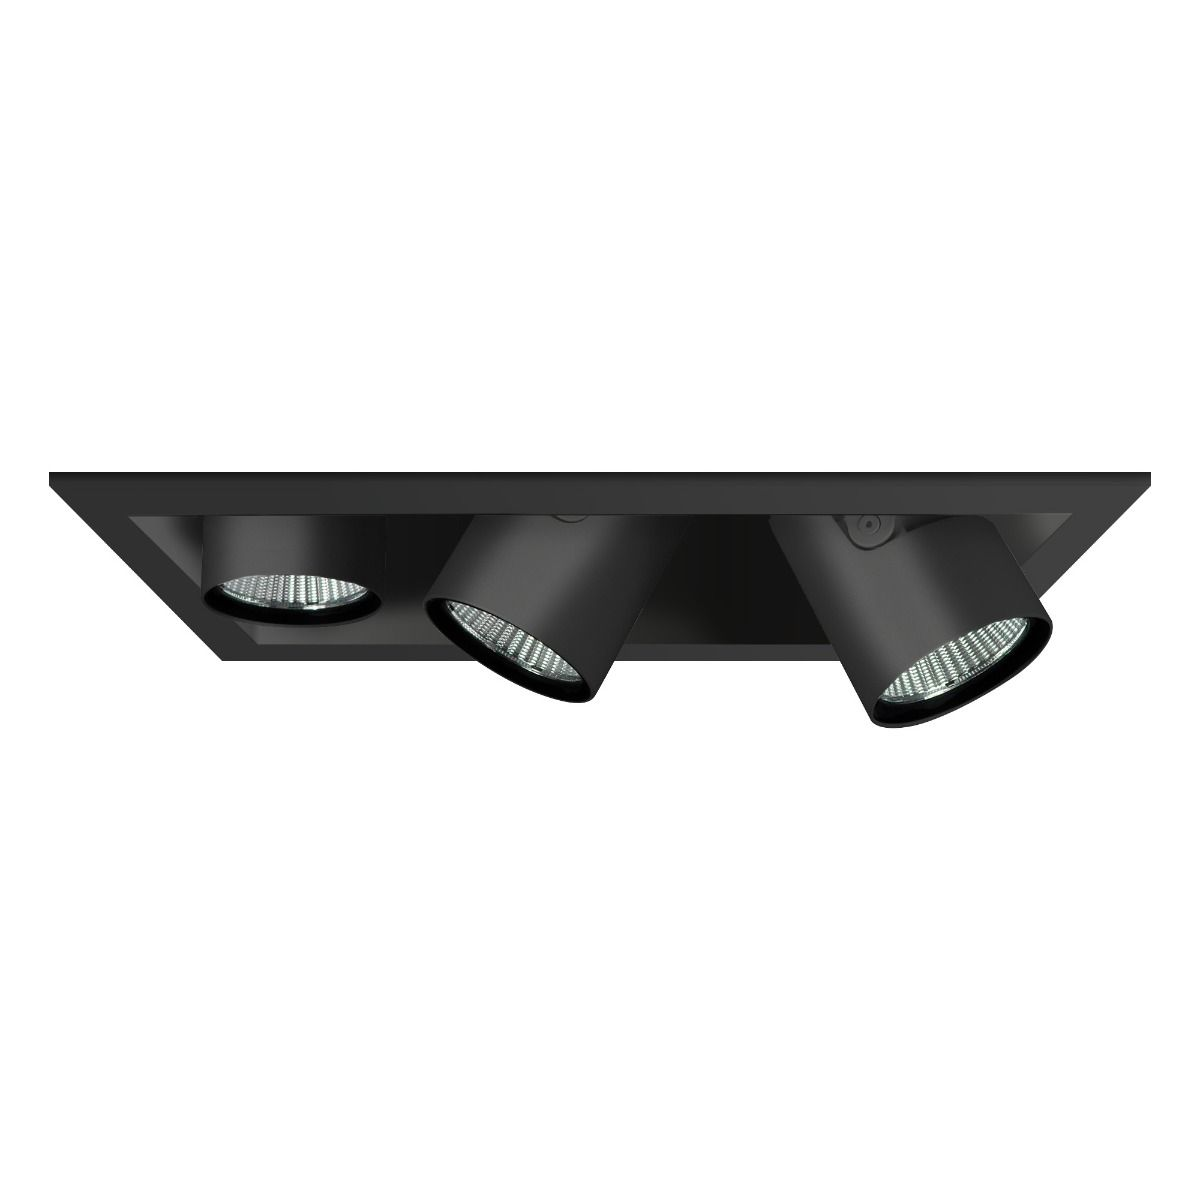 Alcon Lighting 14113 3 Oculare Pull Down Architectural Led Trimless And D Adjule Heads Multiple Recessed System Direct